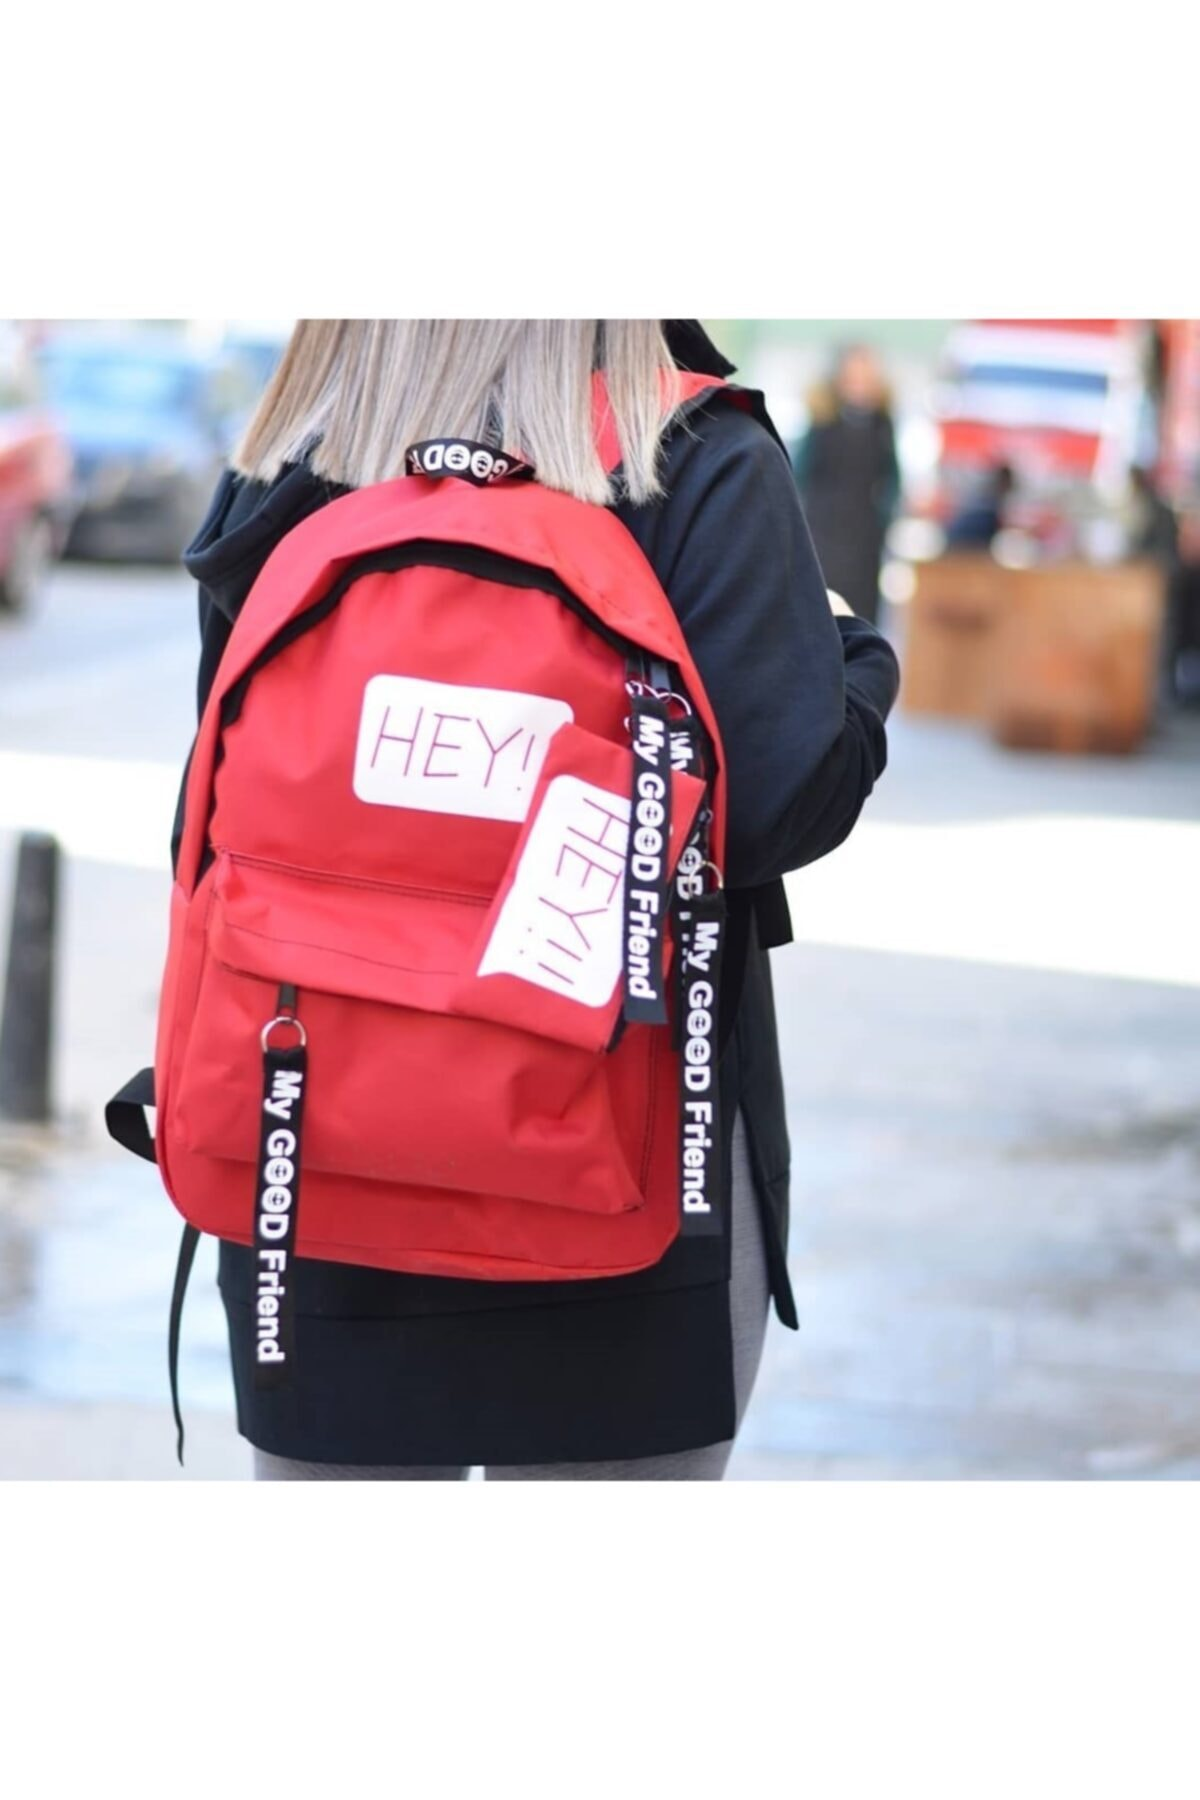 Season Trend Unisex Sports Backpack Unisex Bag Sports Bag Luxury Design Handbag 2021 Special Design